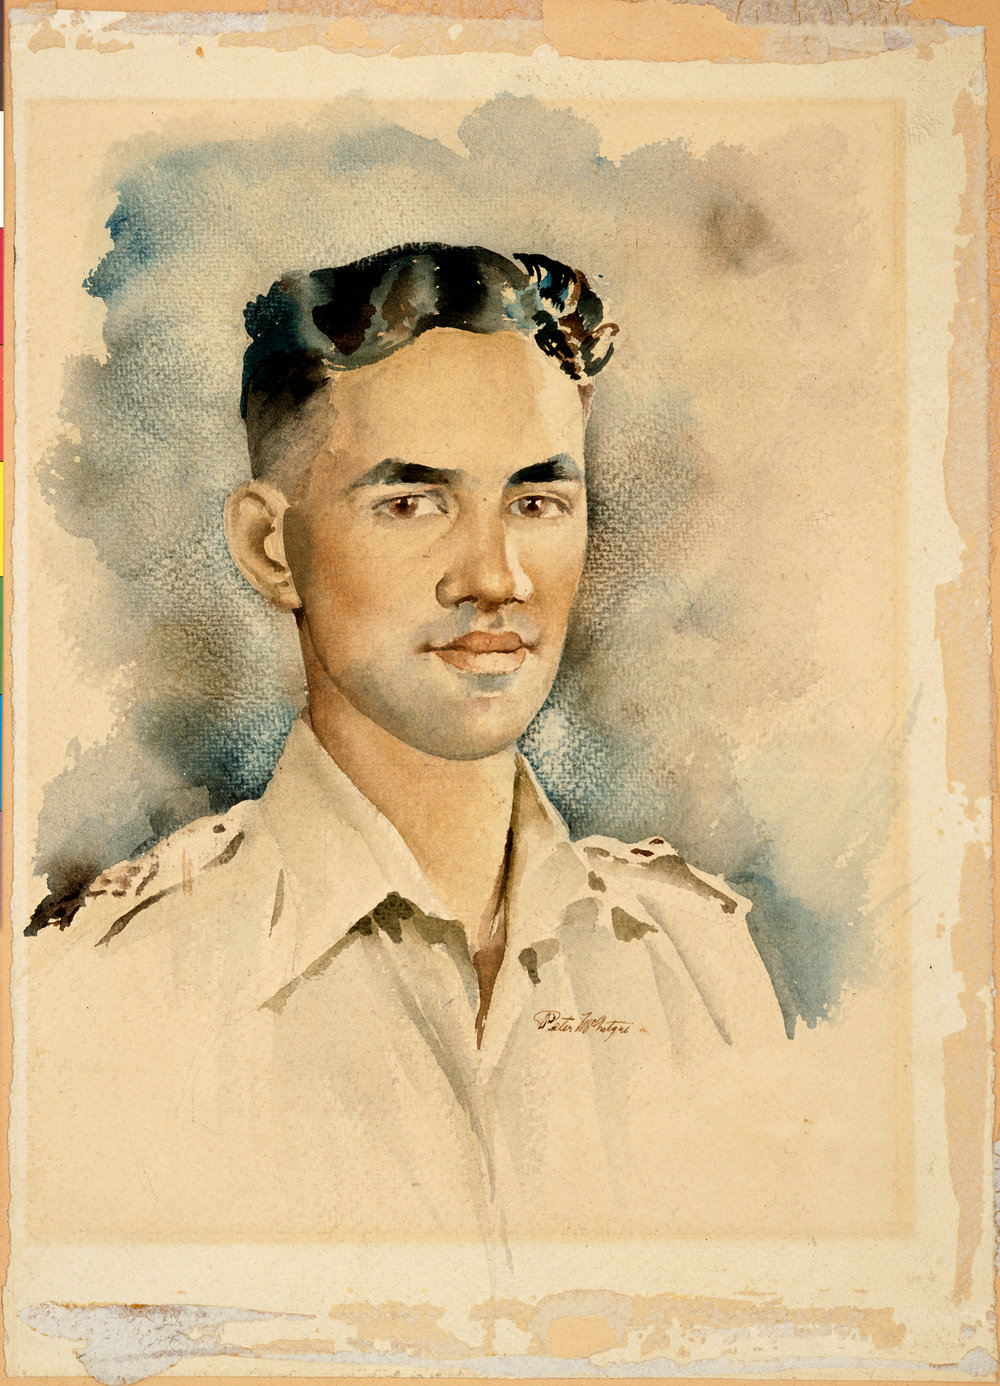 Figure 4: Watercolour portrait of 2nd Lieutenant Moananui-a-Kiwa Ngārimu, VC, by Peter McIntyre, circa 1944. Source: Archives New Zealand,  War Art.  URL:      http://warart.archives.govt.nz/node/99